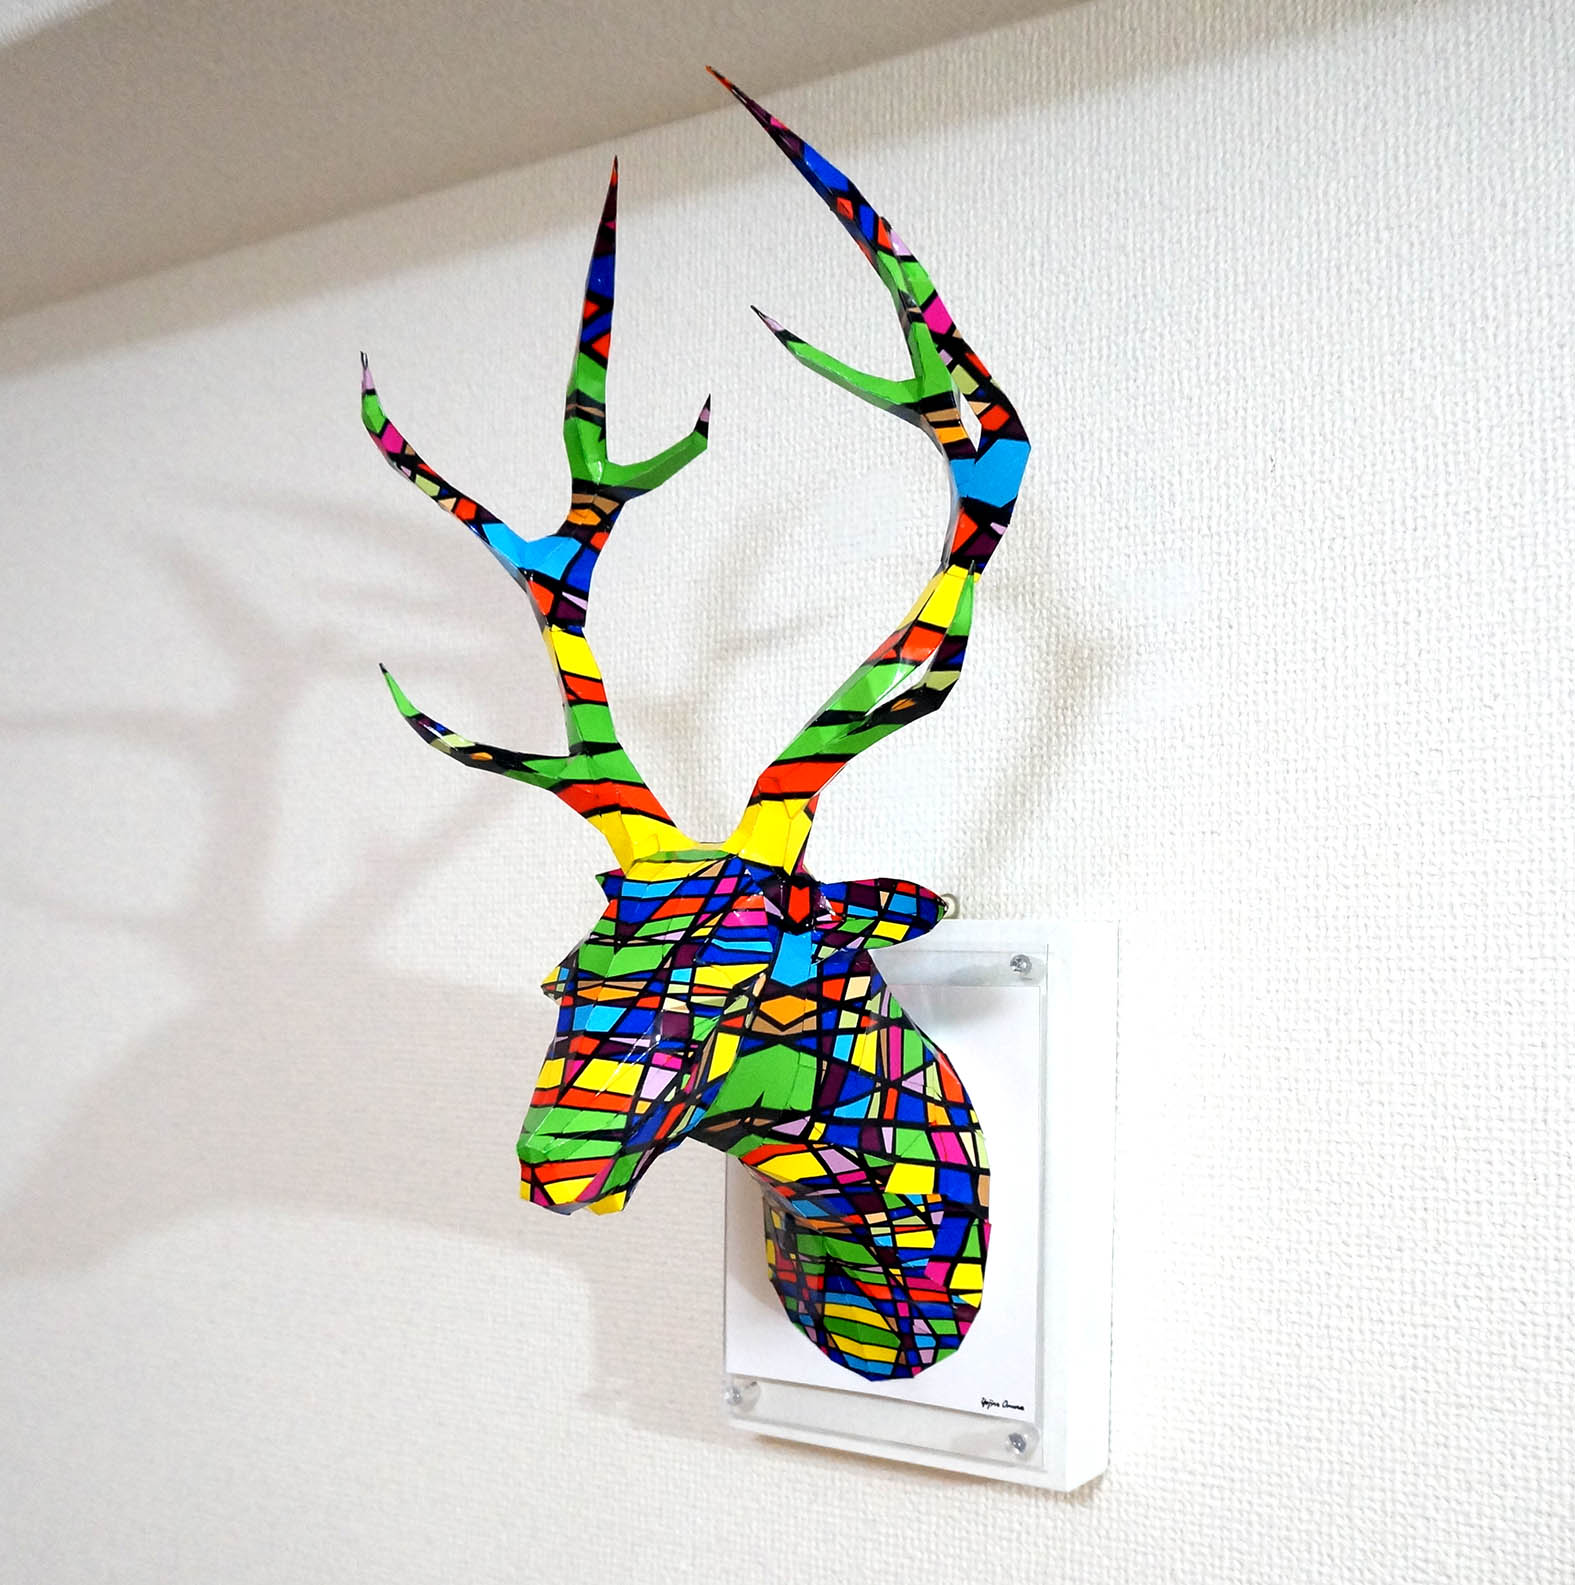 「Deer of the colorful grid」